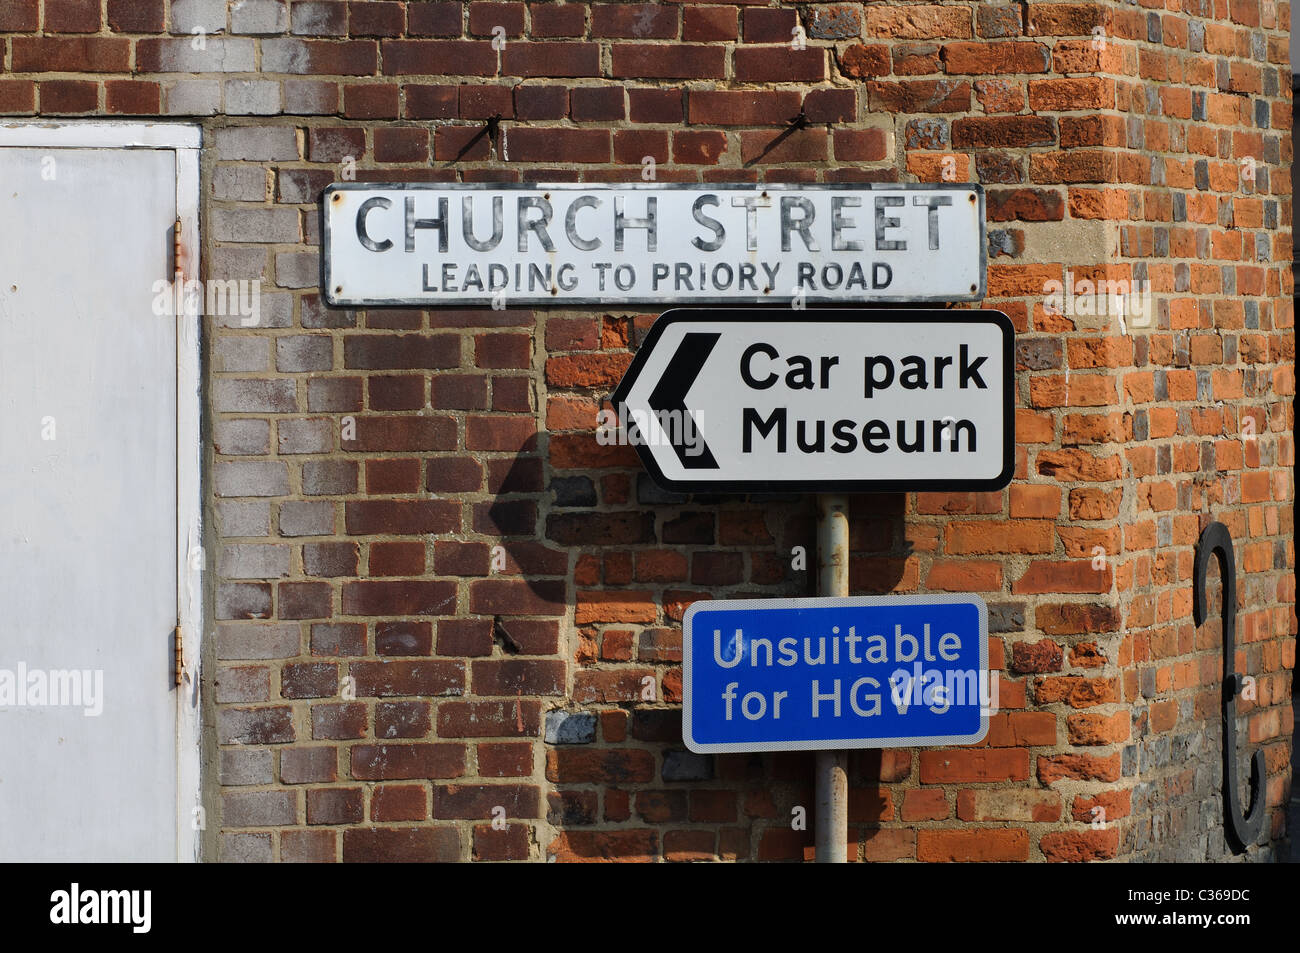 Signs in Wantage town centre, Oxfordshire, England, UK - Stock Image